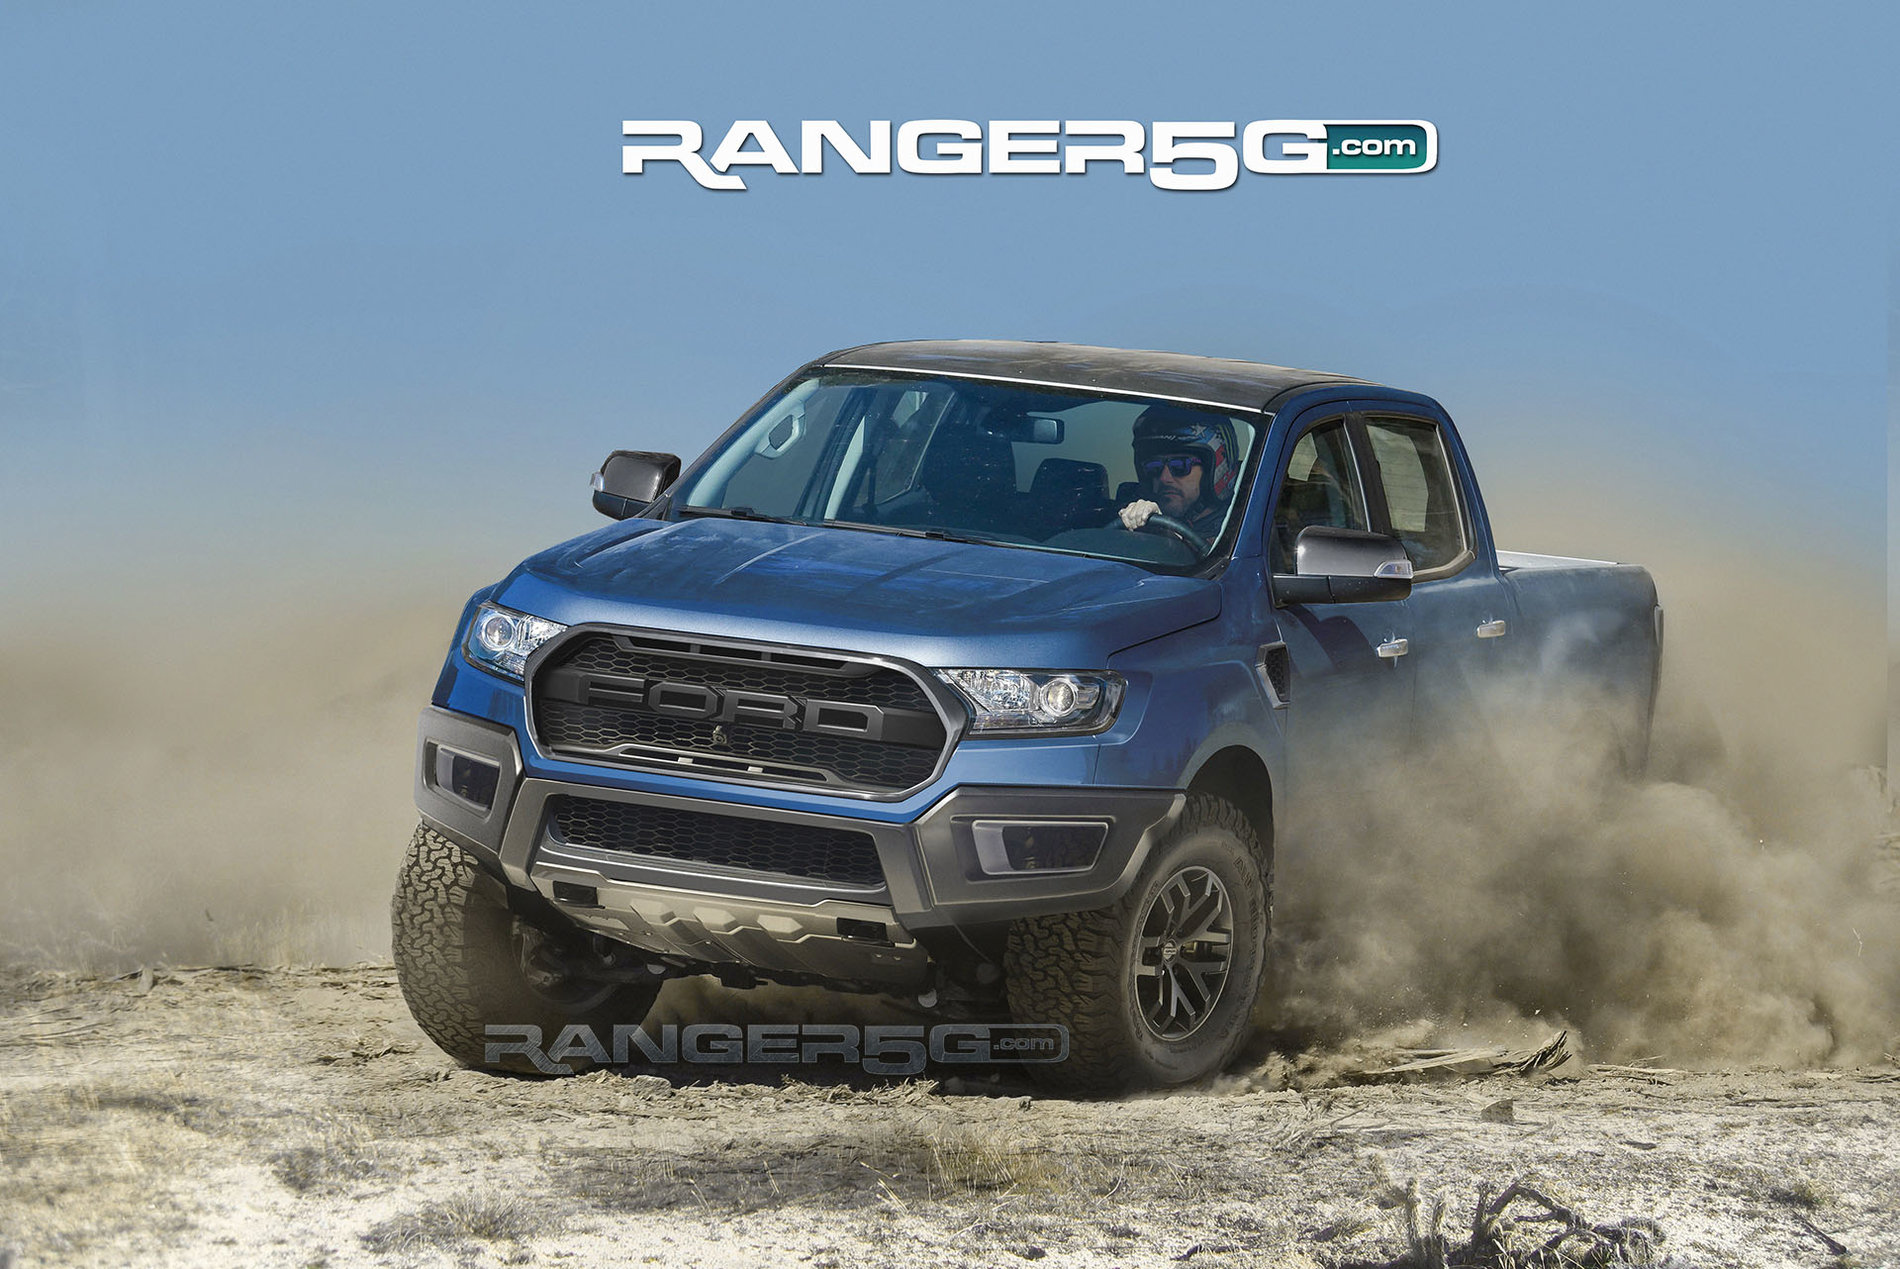 Nova Silverado >> Awesome Ford Ranger Raptor Renderings Show Off Kickass Color Choices - The Drive